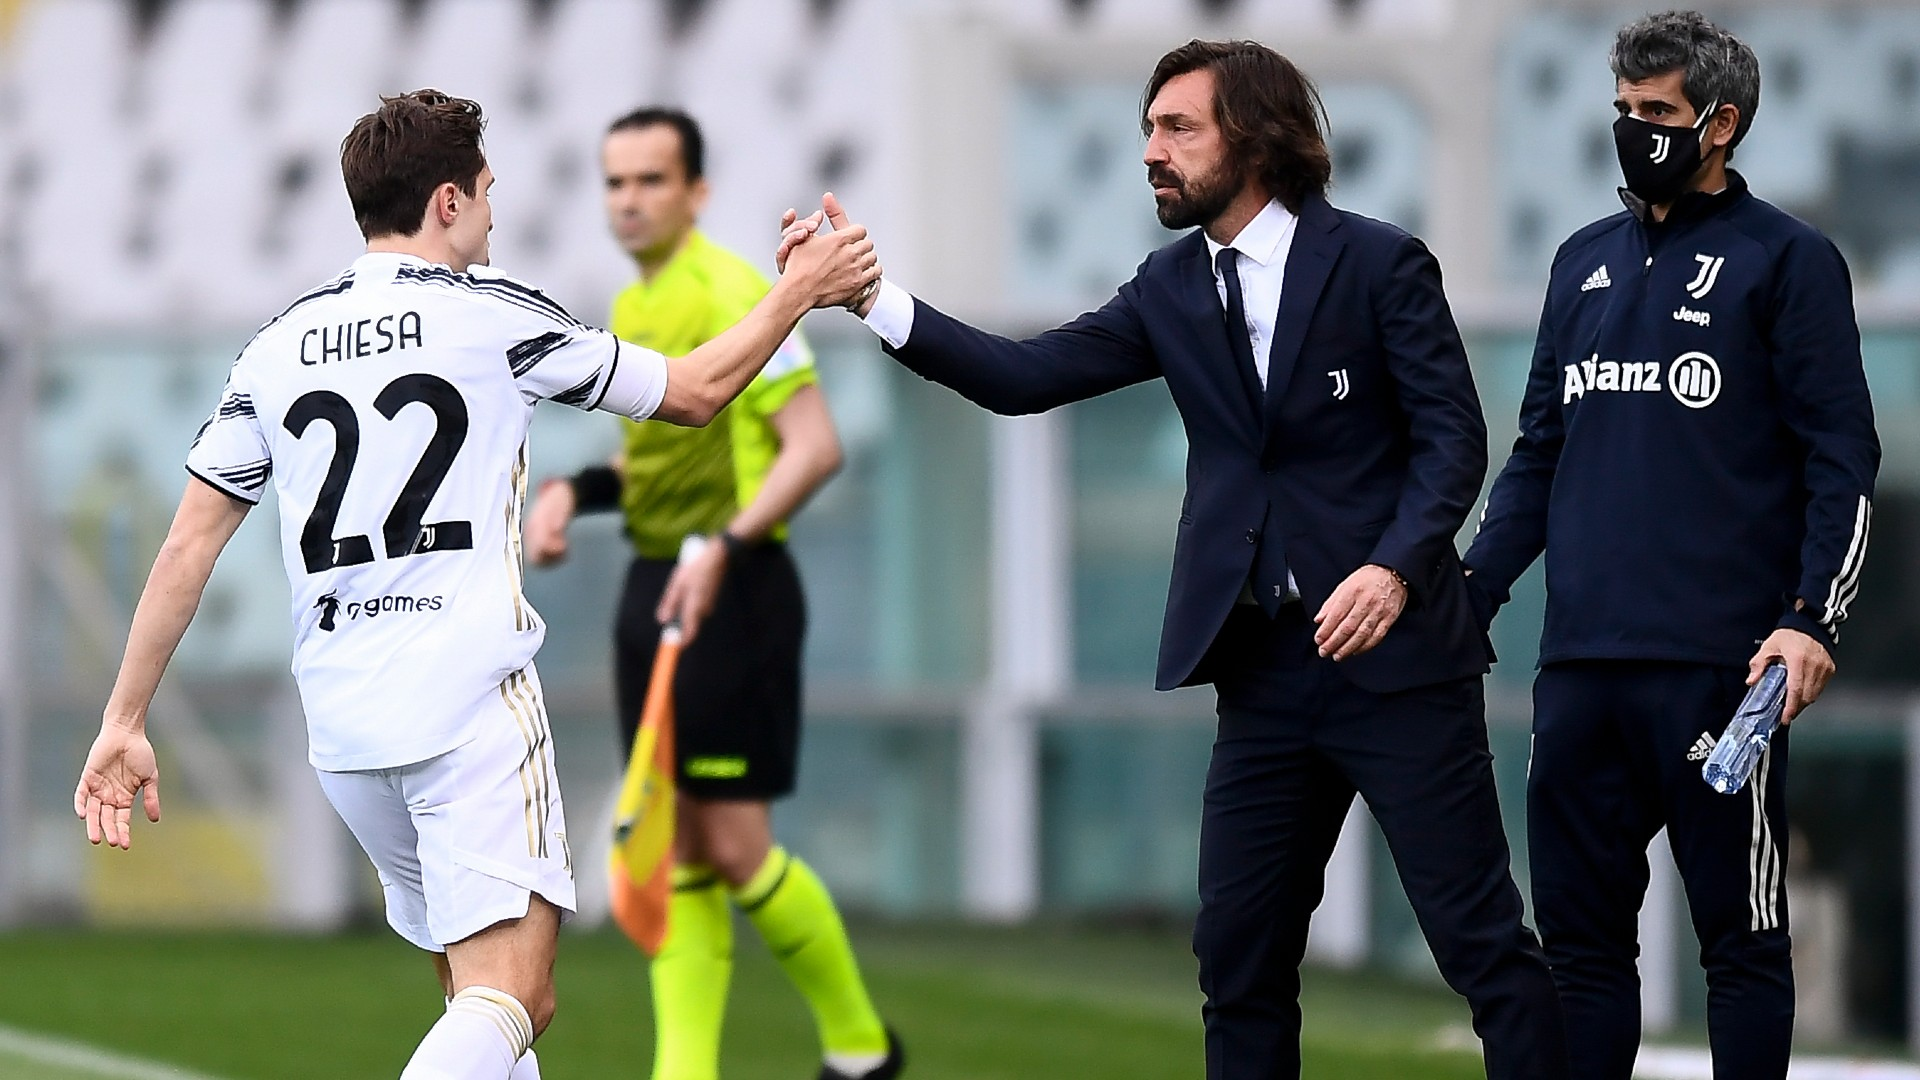 Juve should show some faith in under-fire Pirlo, says Cannavaro